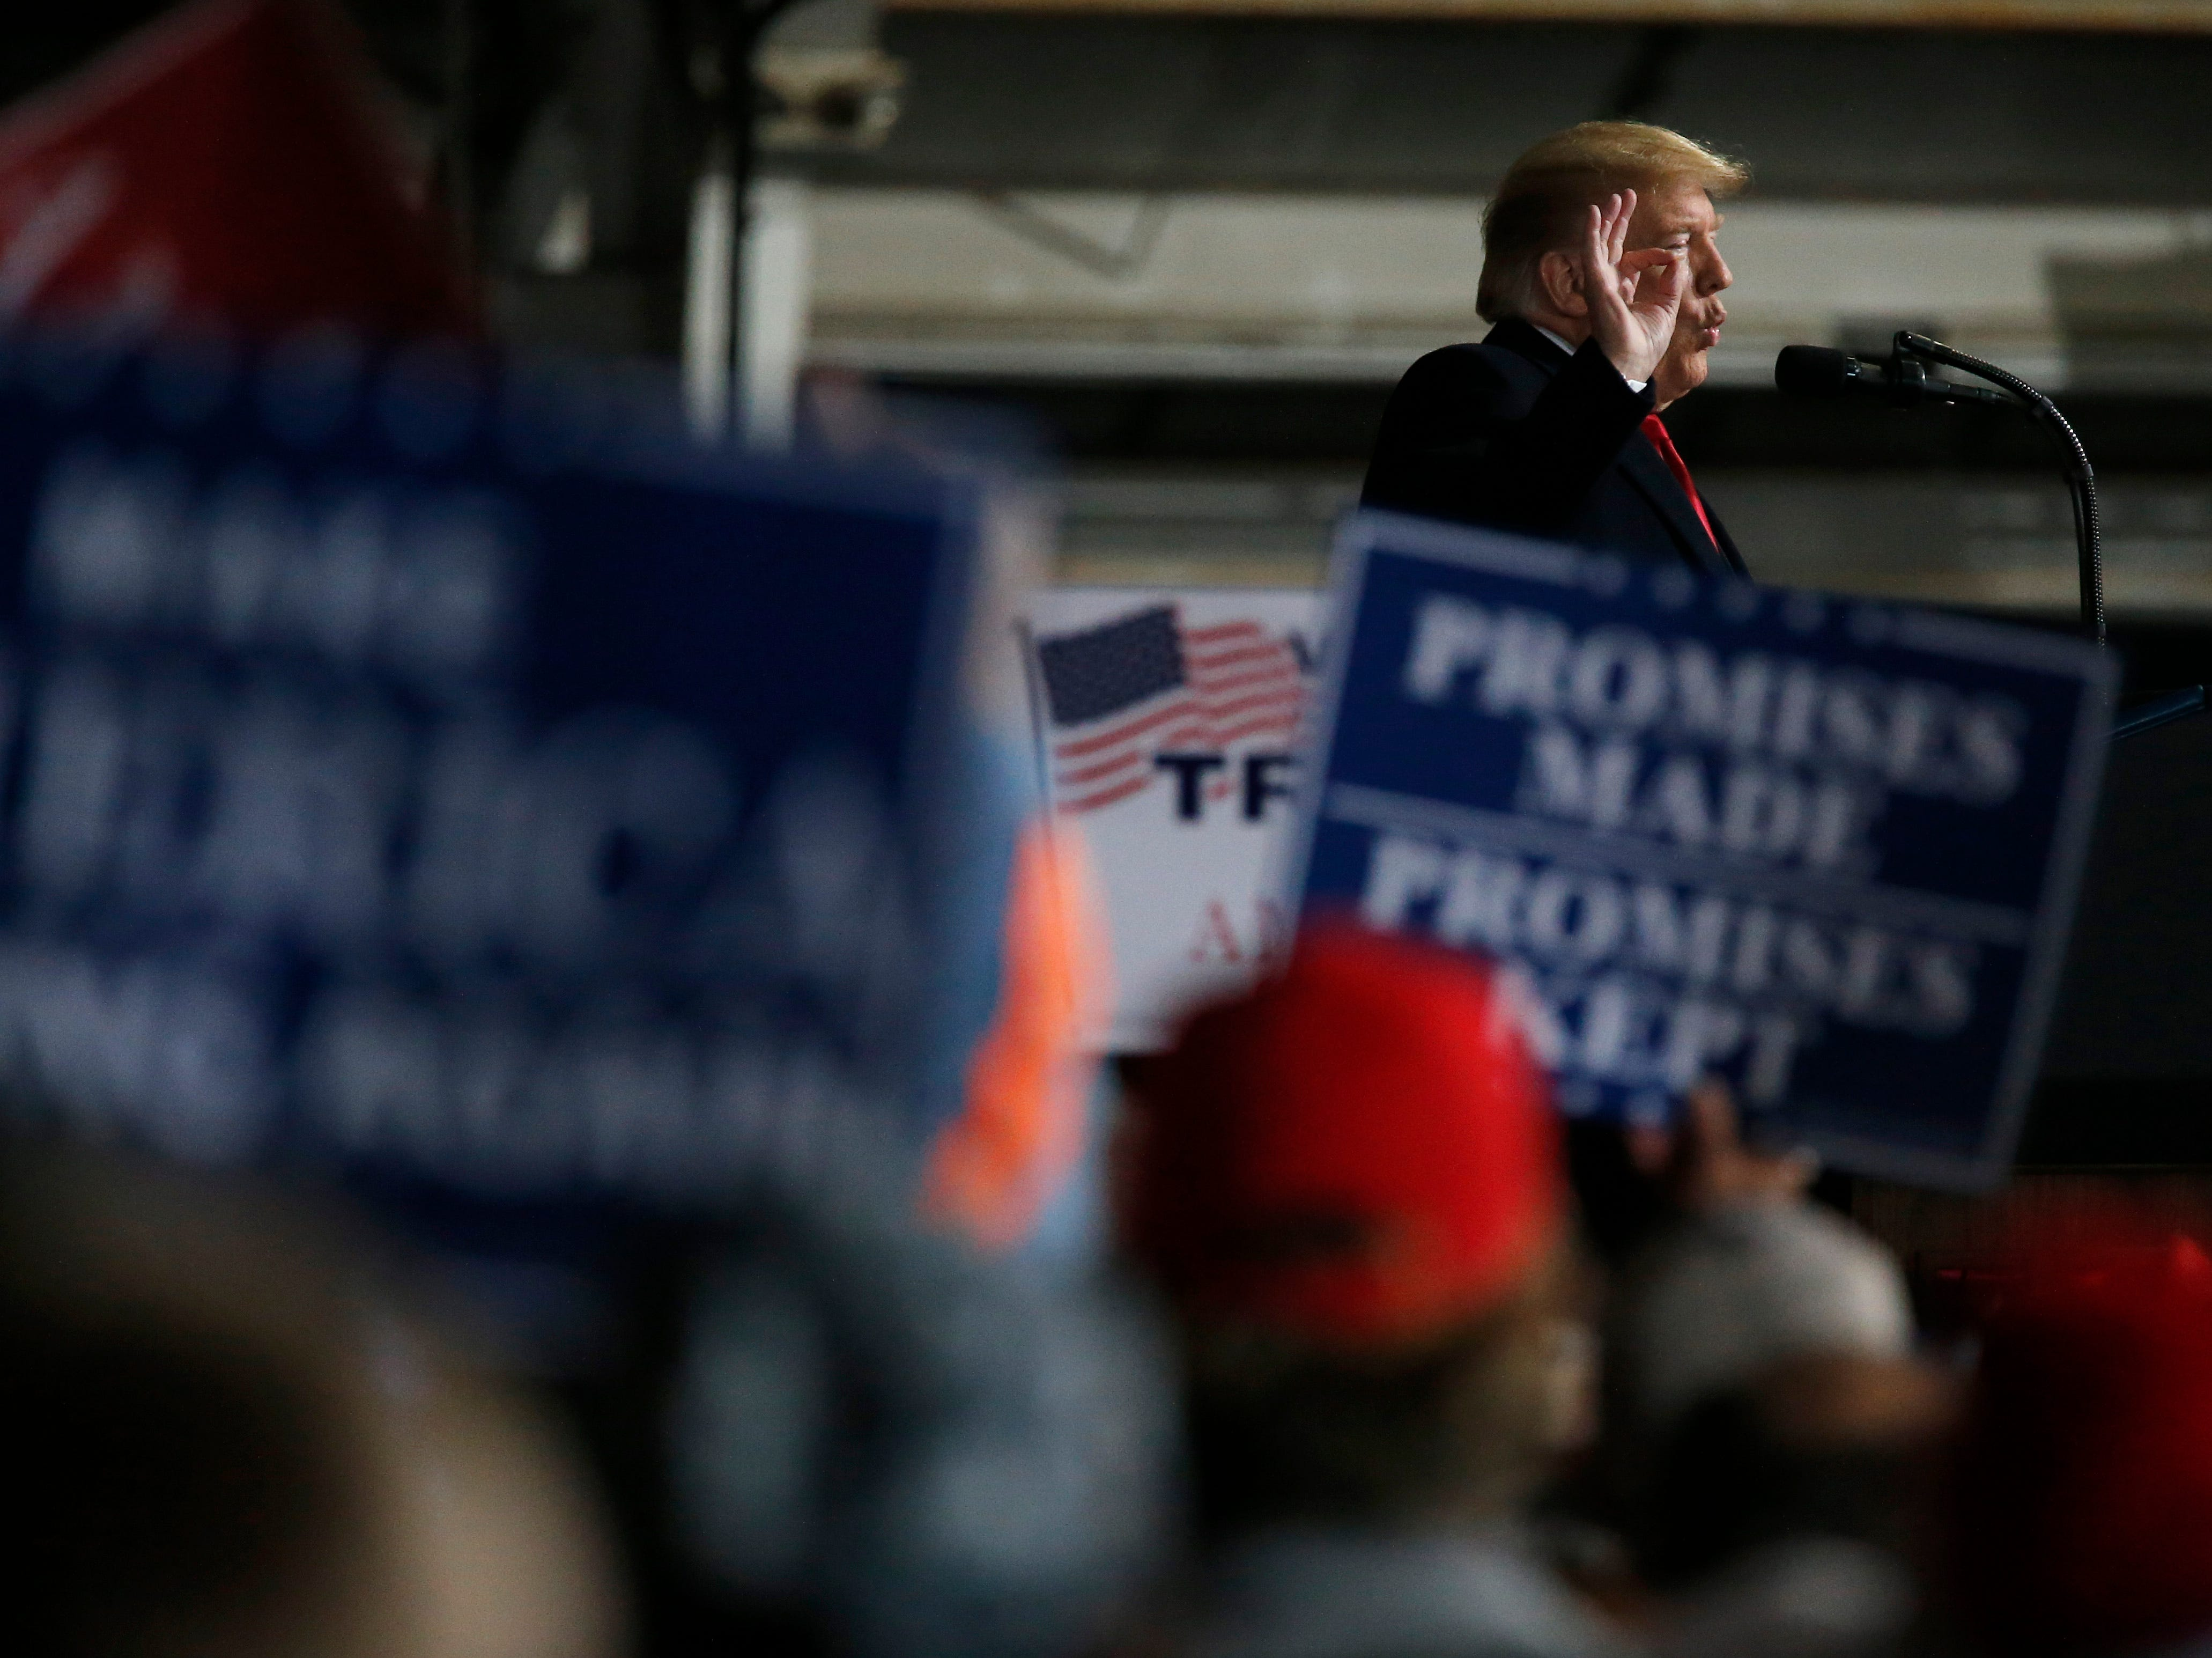 President Donald Trump speaks during a Make America Great Again rally at the warren County Fair Grounds in Lebanon, Ohio, on Friday, Oct. 12, 2018.